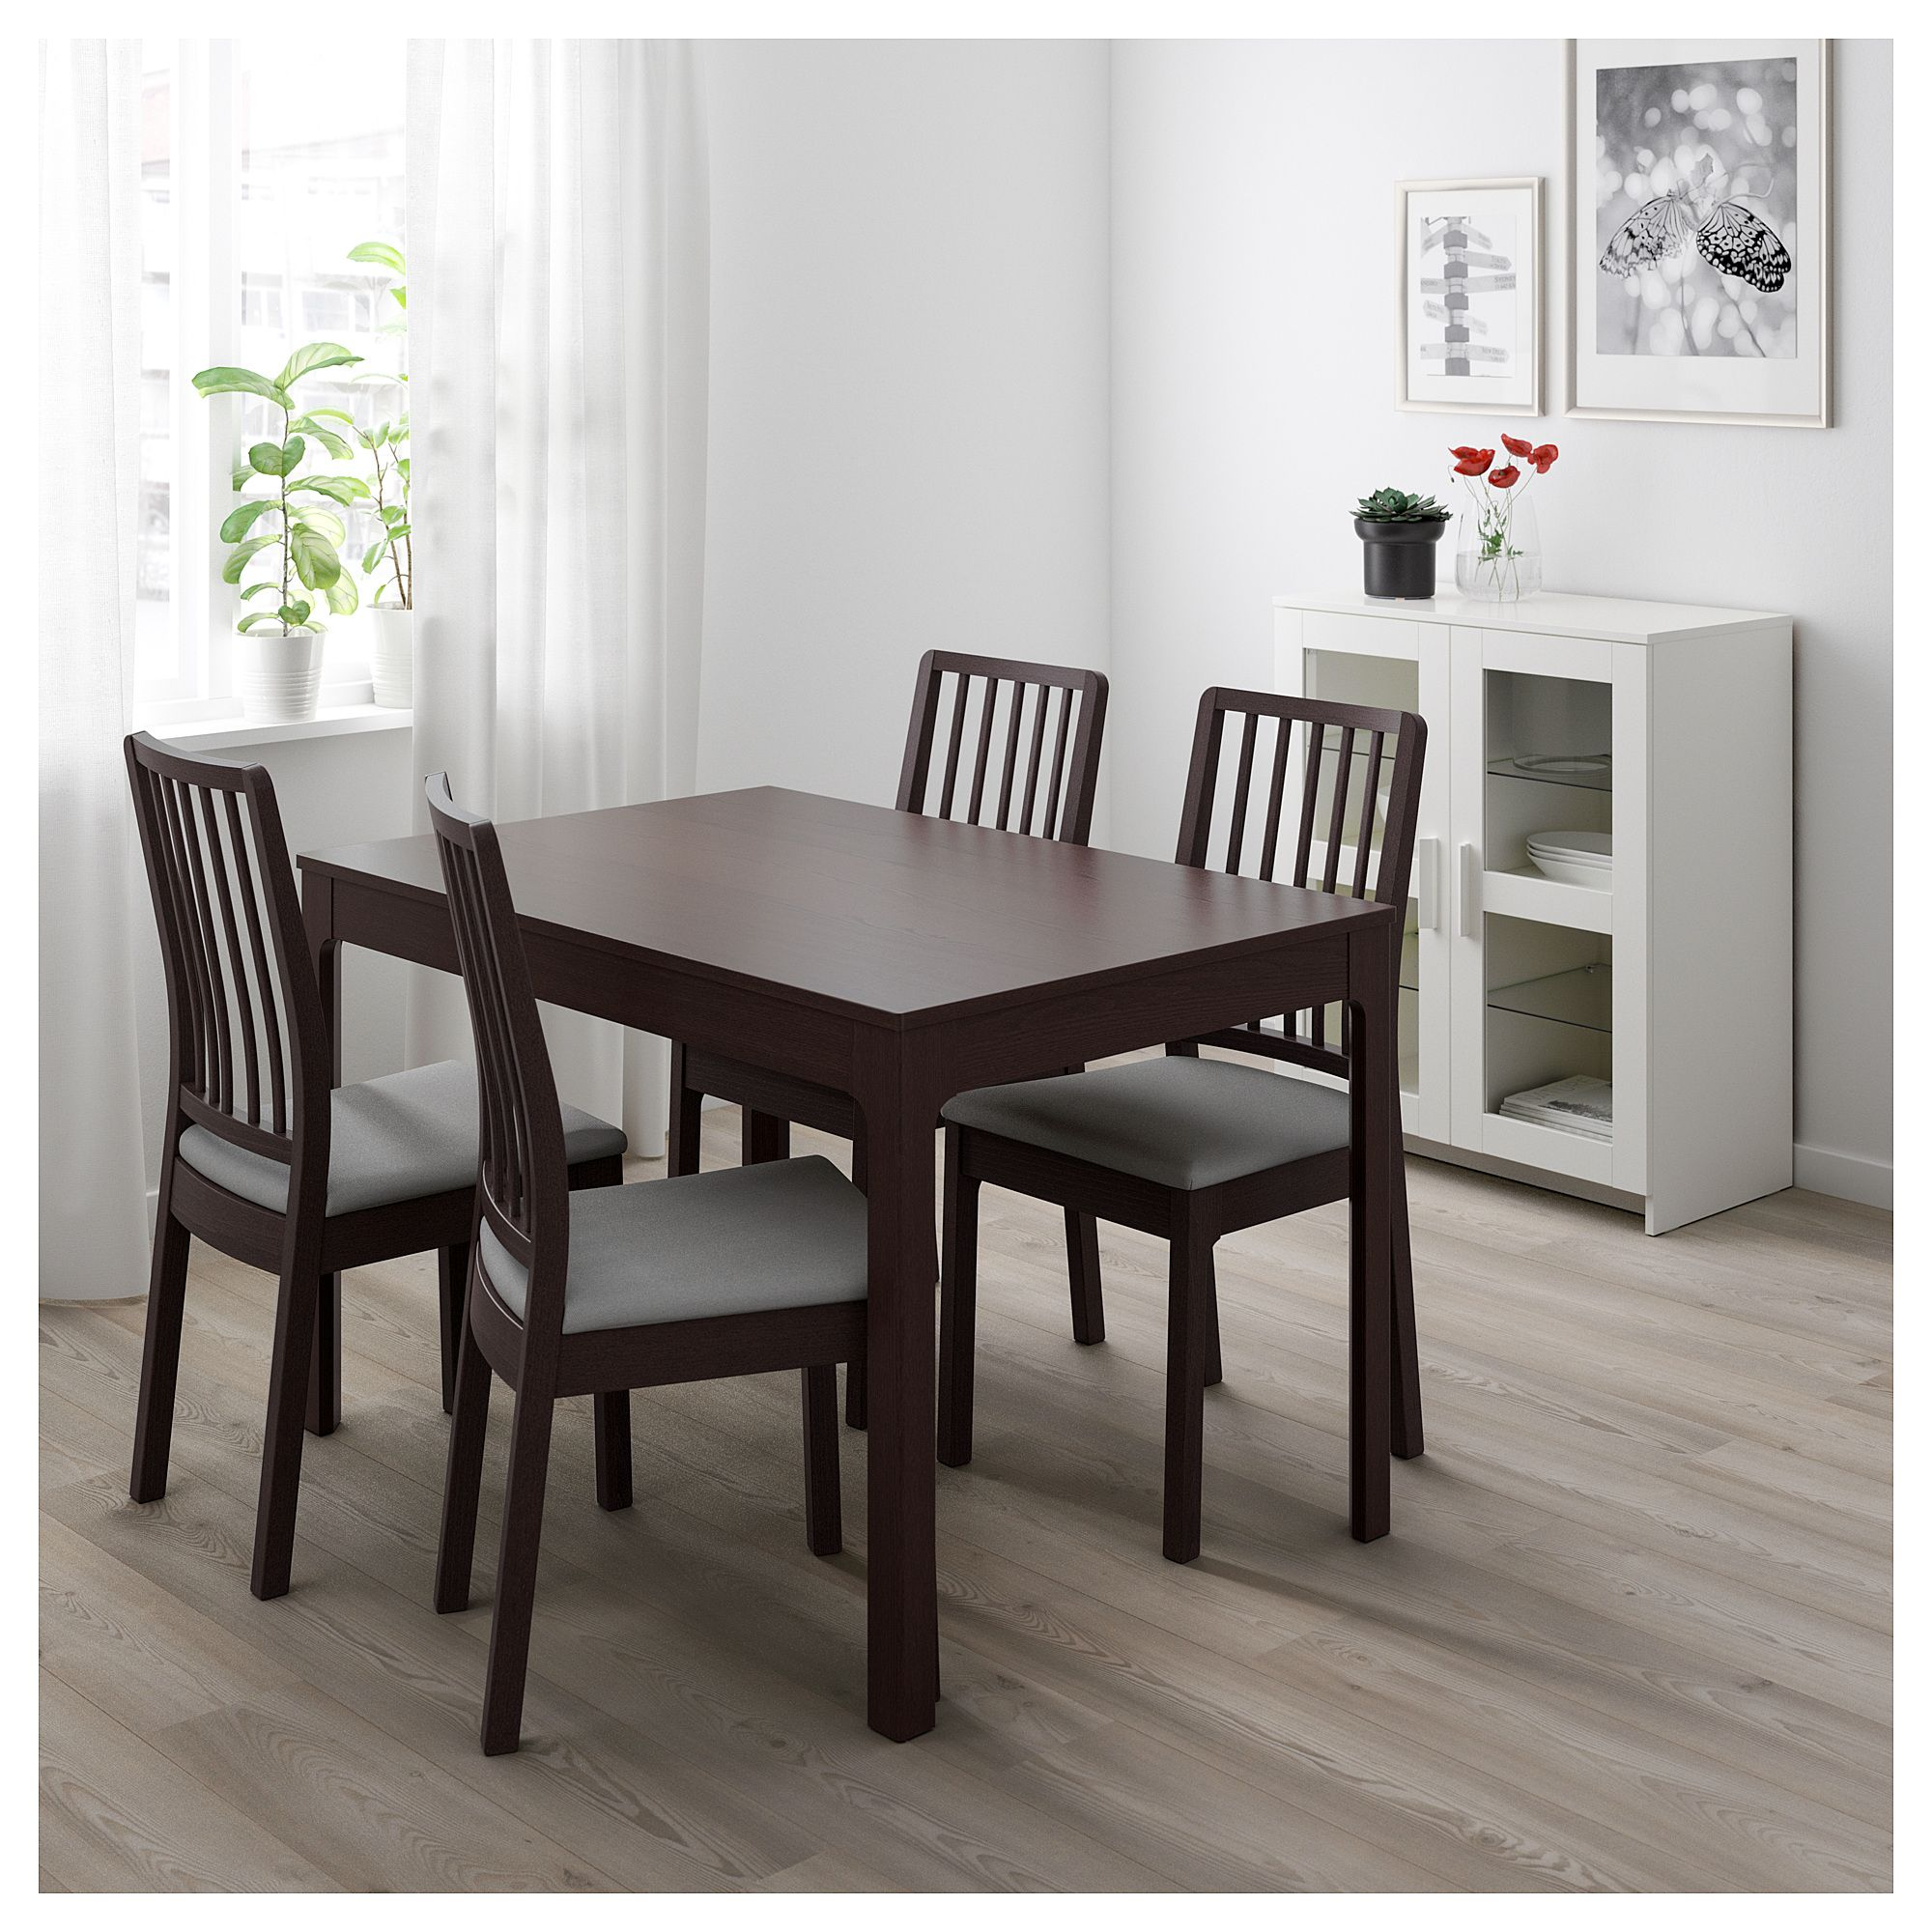 Patas De Mesa Ikea Ikea Ekedalen Chair Cover Orrsta Light Gray In 2019 Products